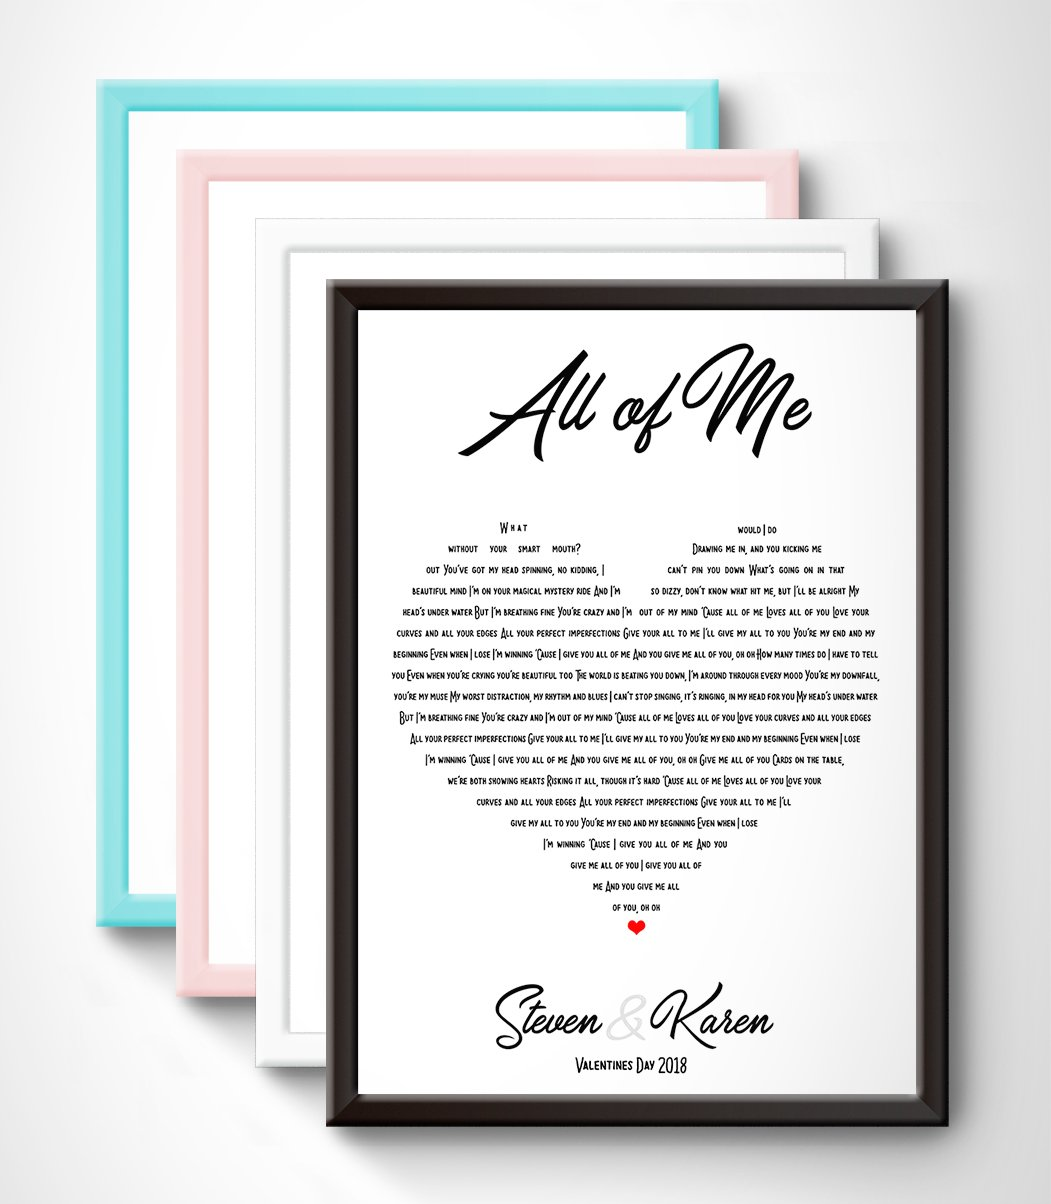 Personalised Song Lyrics Wall Art Print Christmas The perfect gift idea a for wedding Gift this pr anniversary housewarming JOHN LEGEND proposal new home and more love song Mothers day Fathers day engagement first dance ALL OF ME birthday